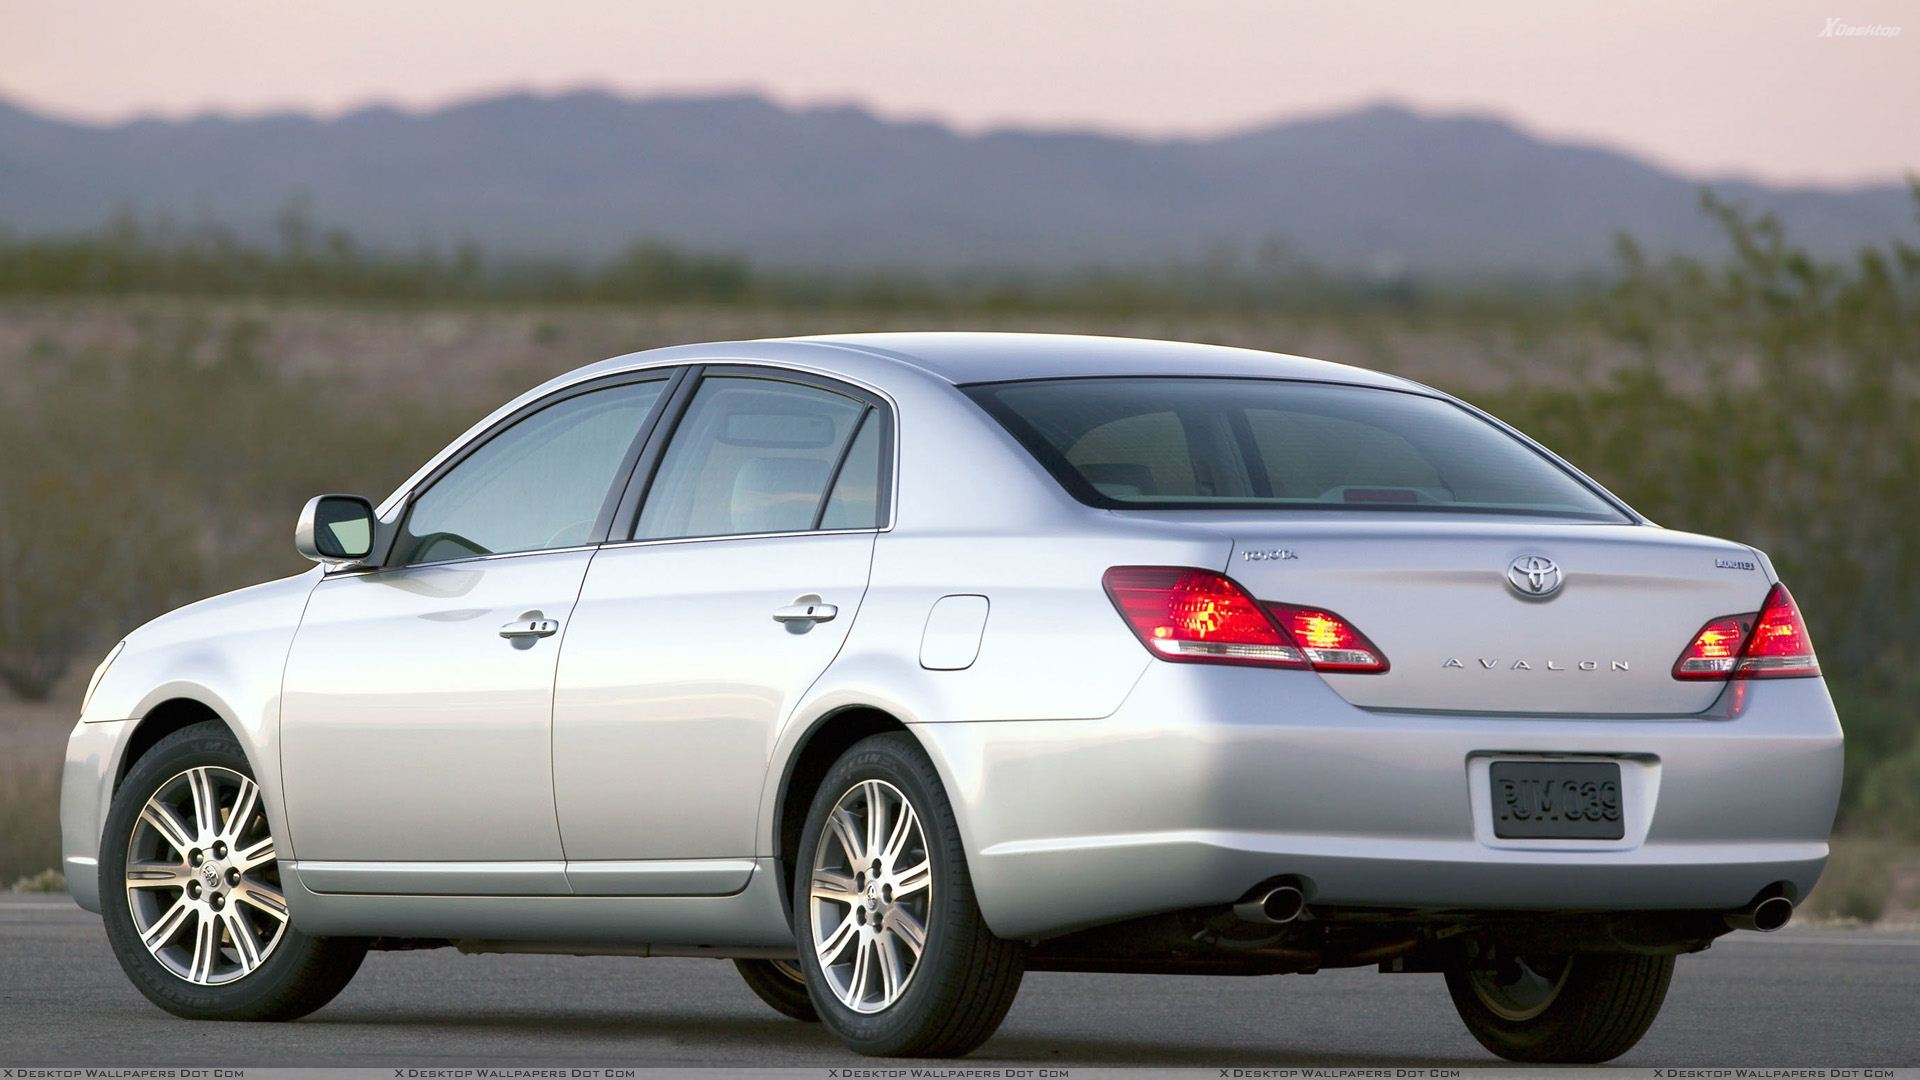 Toyota Avalon Wallpapers Photos Images in HD 1920x1080